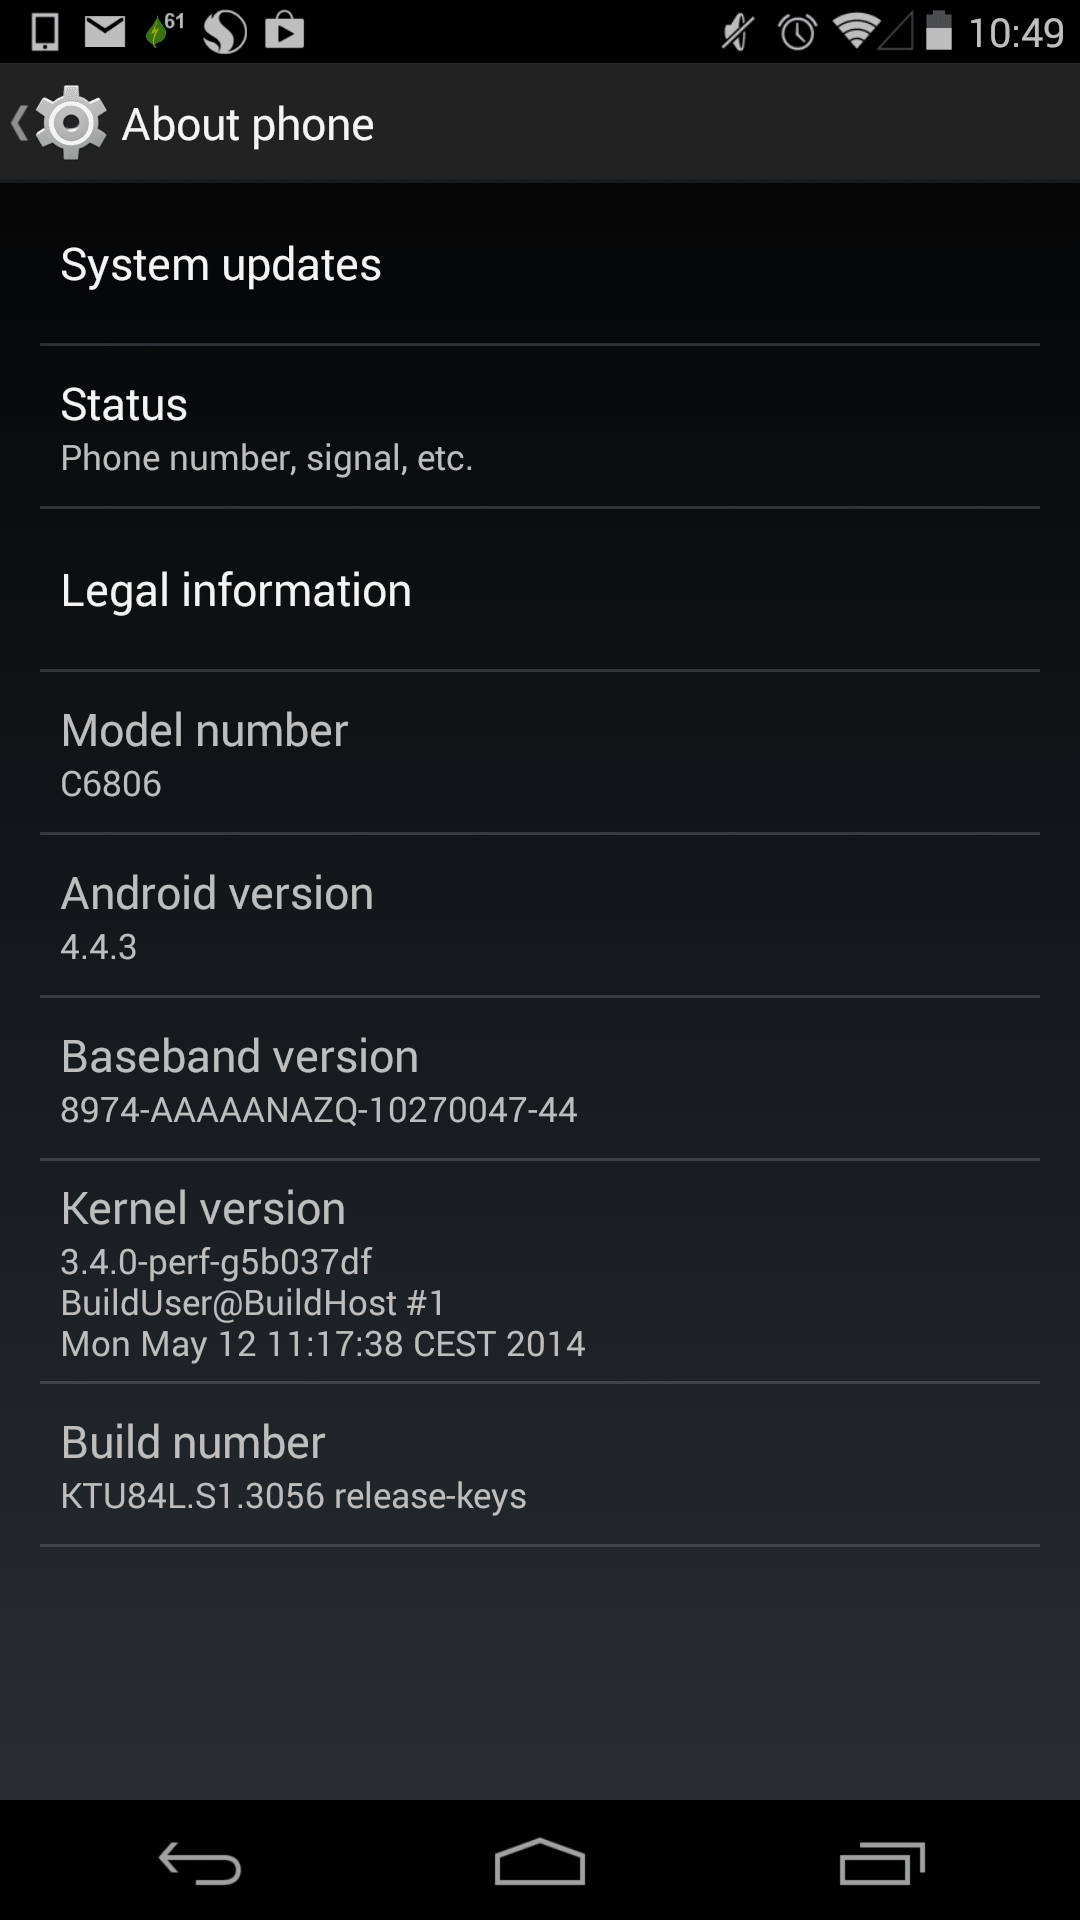 Sony Z Ultra Android 4.4.3 KTU84L.S1.3056